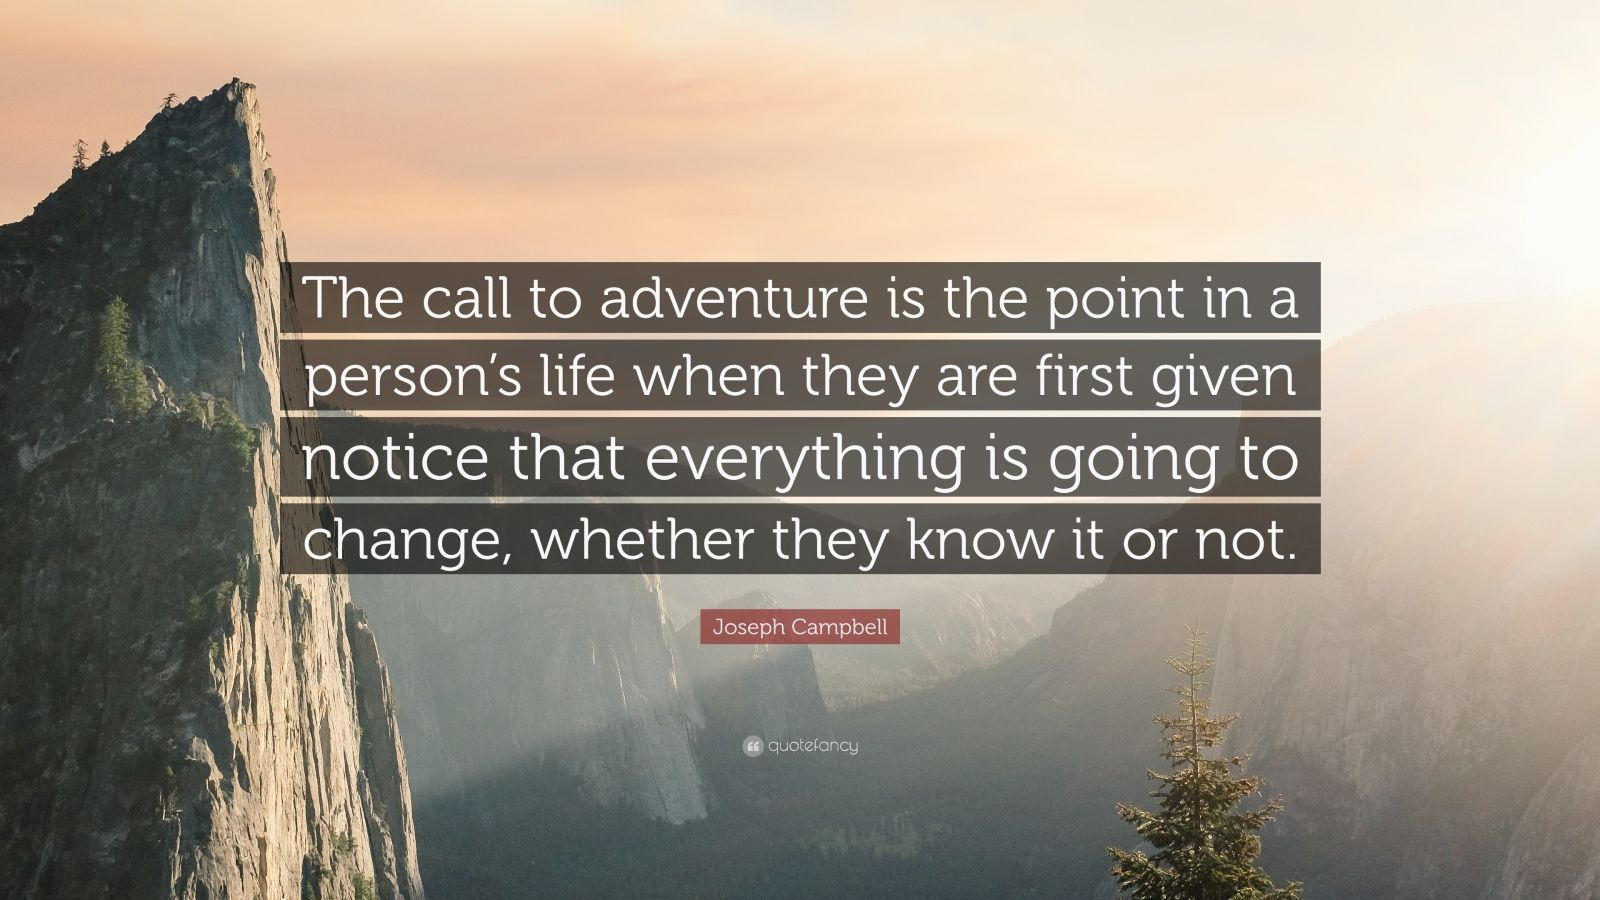 """Joseph Campbell Quote: """"The call to adventure is the point in a person's life when they are first given notice that everything is going to change, whether they know it or not."""""""